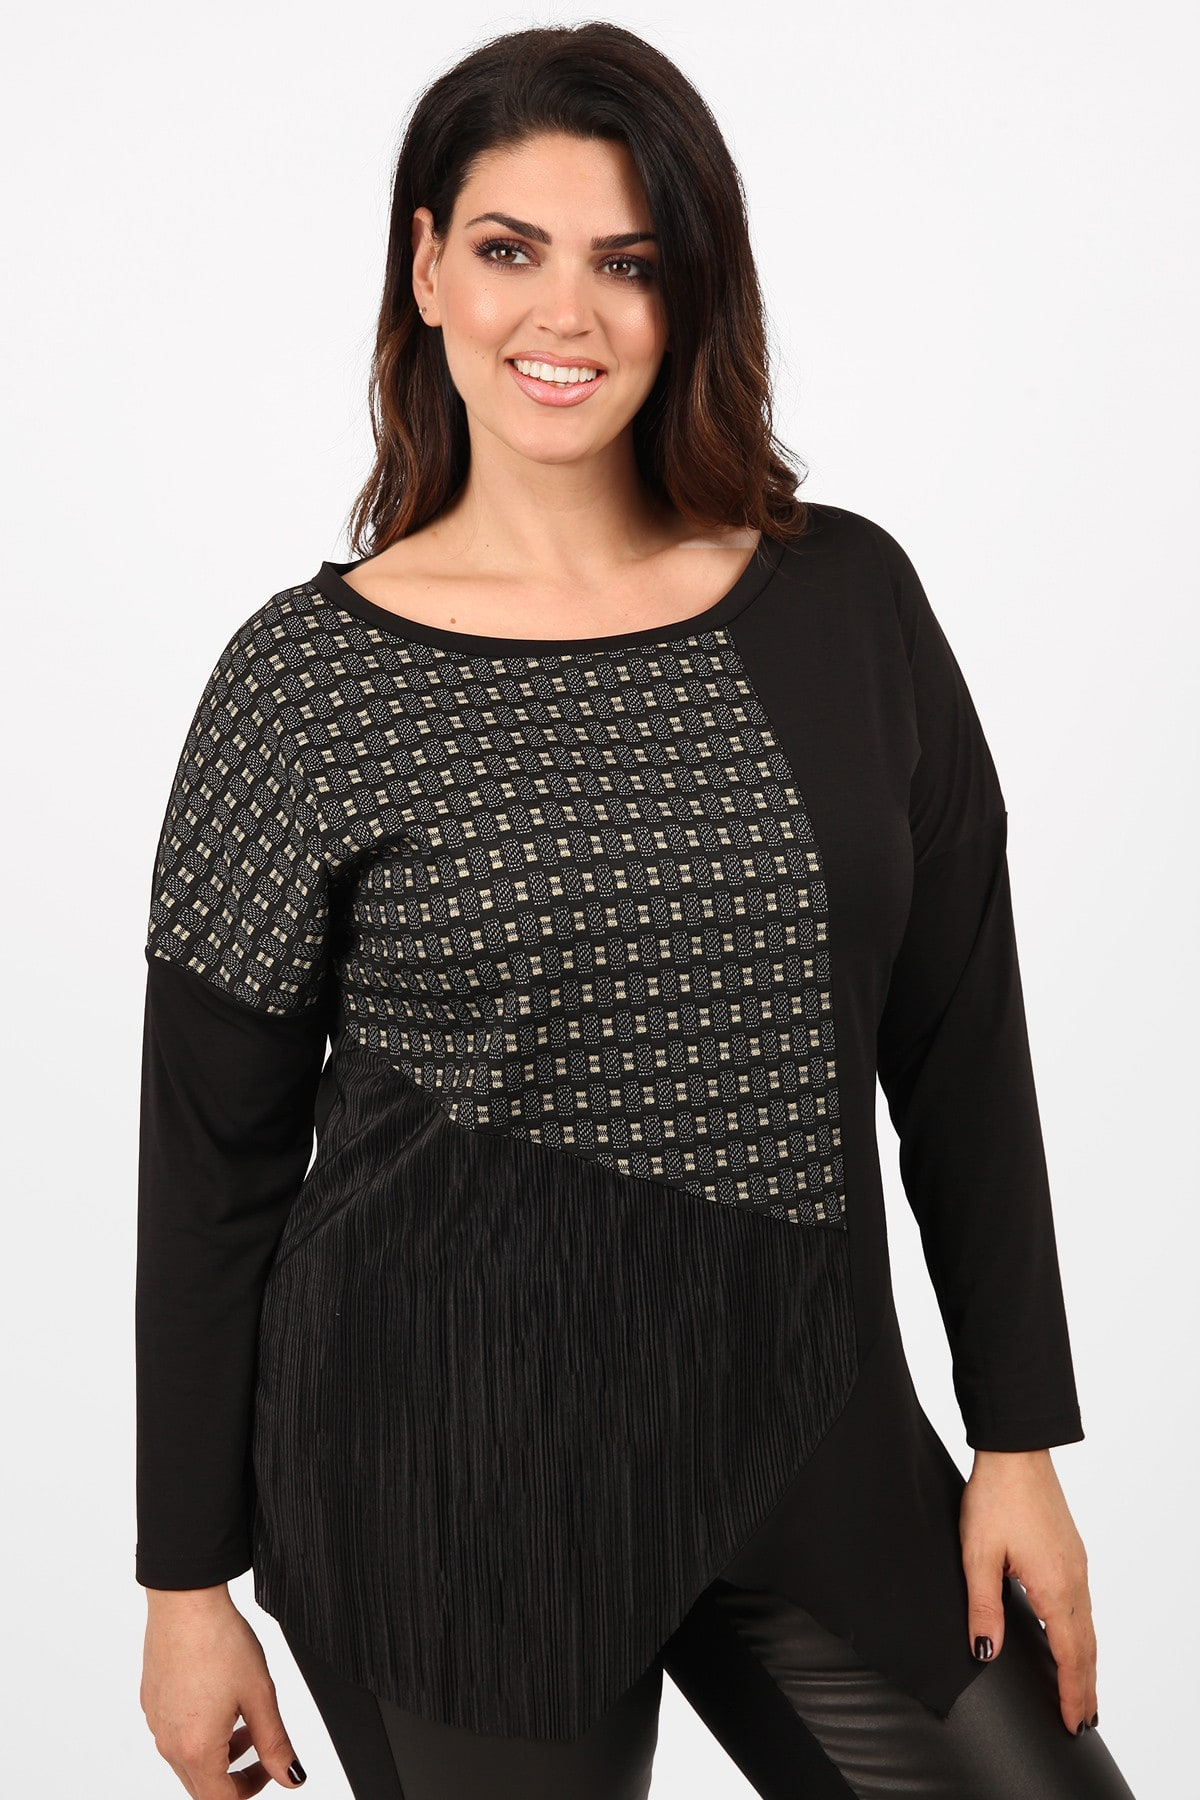 Blouse in the combination of patterns and textures